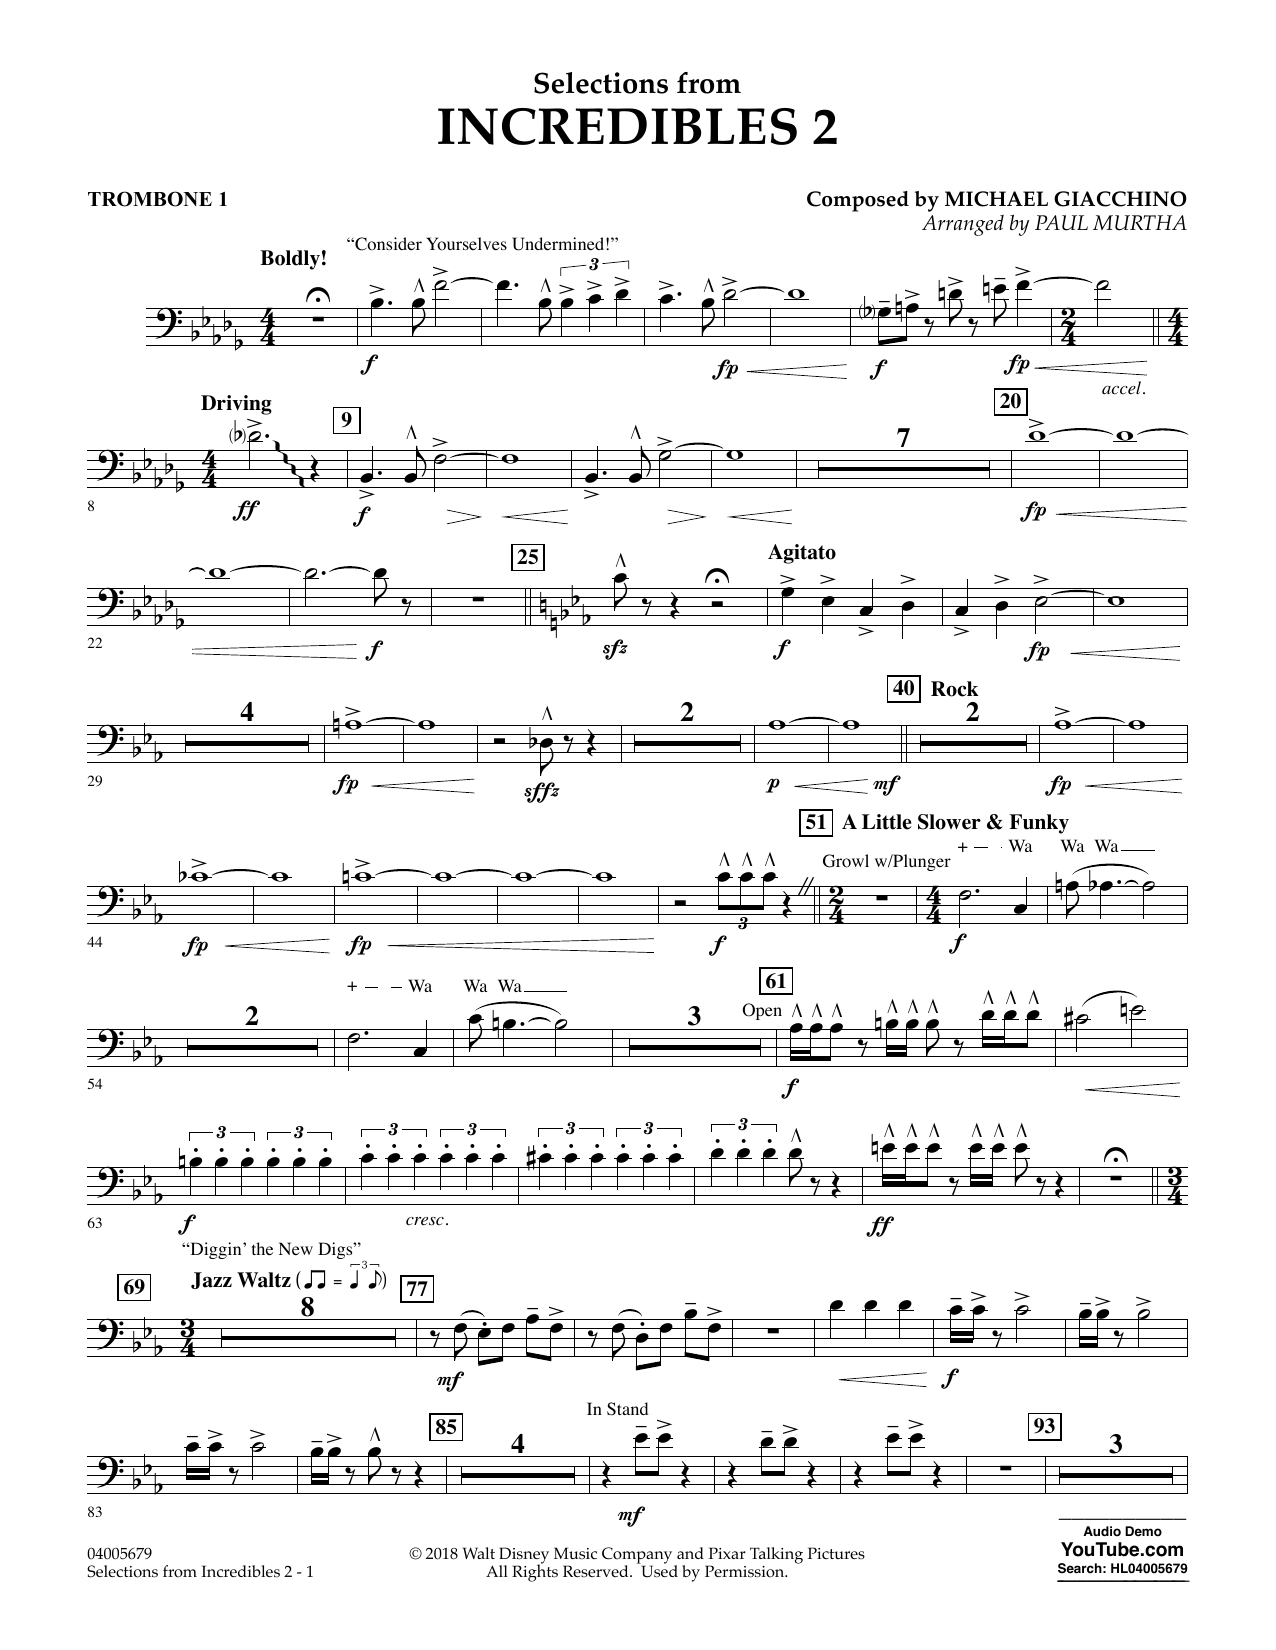 Selections from Incredibles 2 (arr. Paul Murtha) - Trombone 1 (Concert Band)